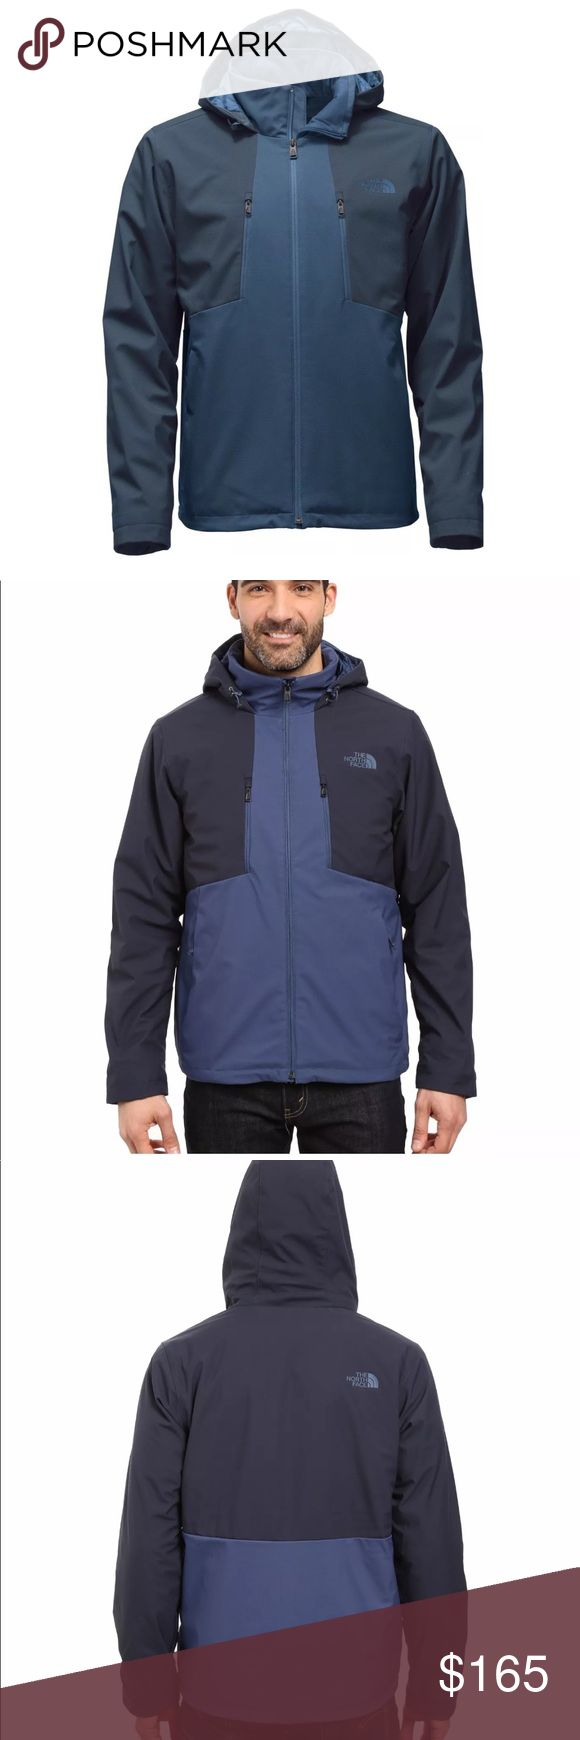 New The North Face Apex elevation blue jacket Let the elements roll off your back with this windproof, water-repellent soft-shell hooded jacket that delivers insulated, breathable warmth during active winter endeavors ·         100% windproof fabric ·         Attached, fully adjustable, insulated drop hood ·         Exposed, reverse-coil center front and chest pocket zips ·         Covered, secure-zip hand pockets ·         Internal comfort cuffs ·         Hem cinch-cord ·         Media…